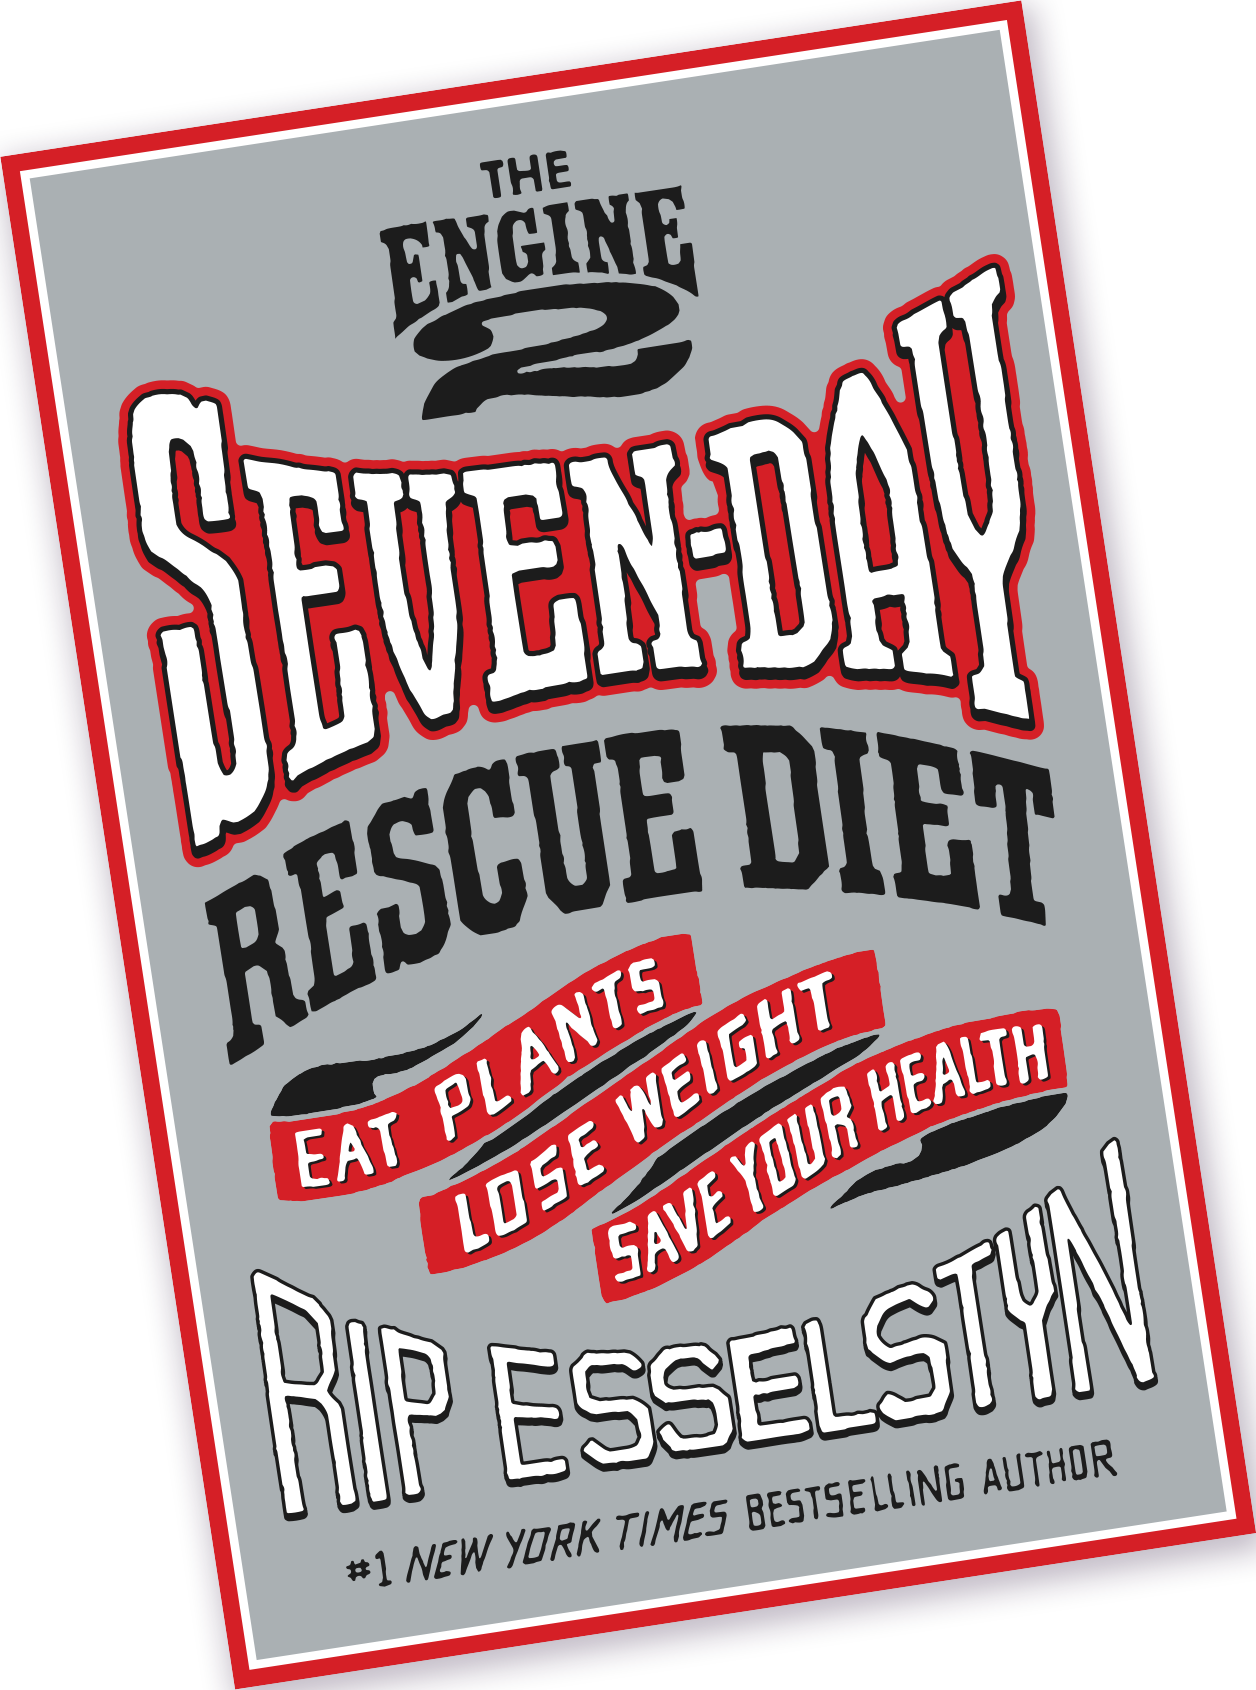 what is the engine 2 diet